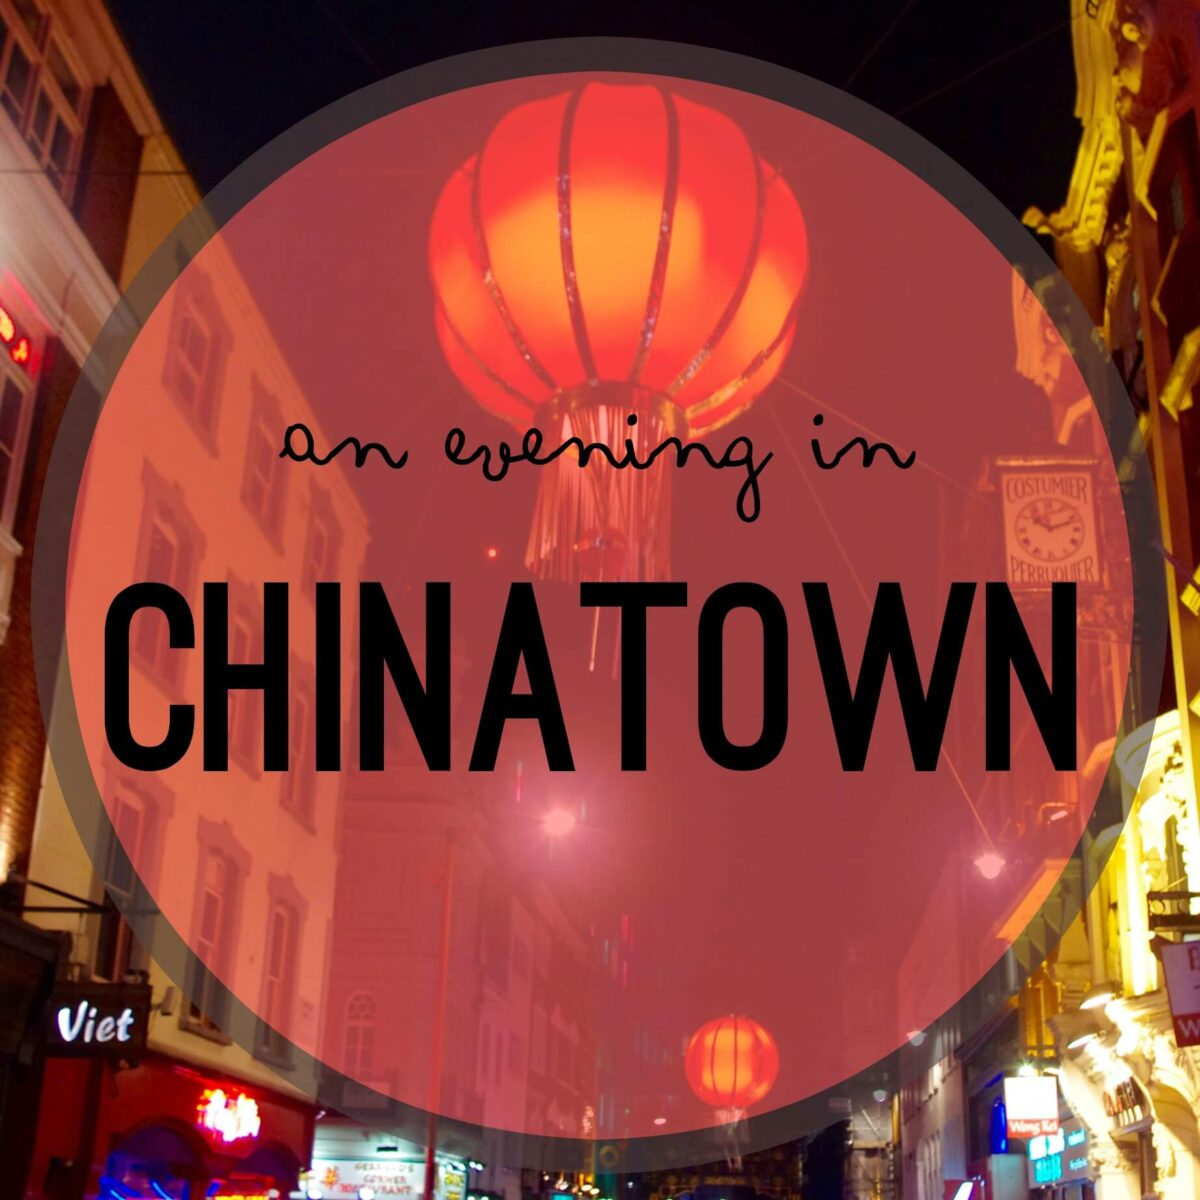 An evening in Chinatown